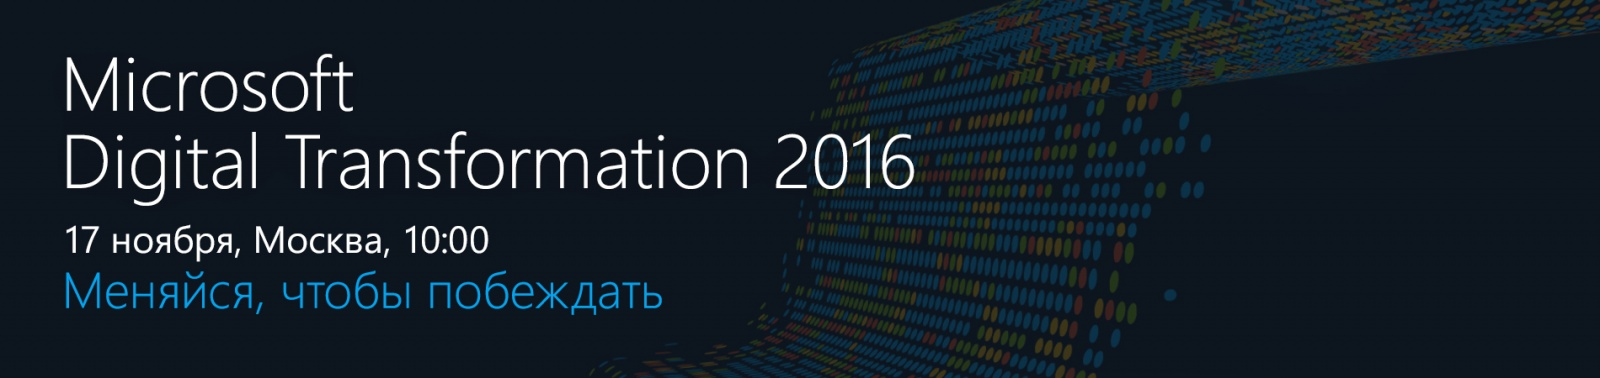 Digital Transformation 2016 - 1